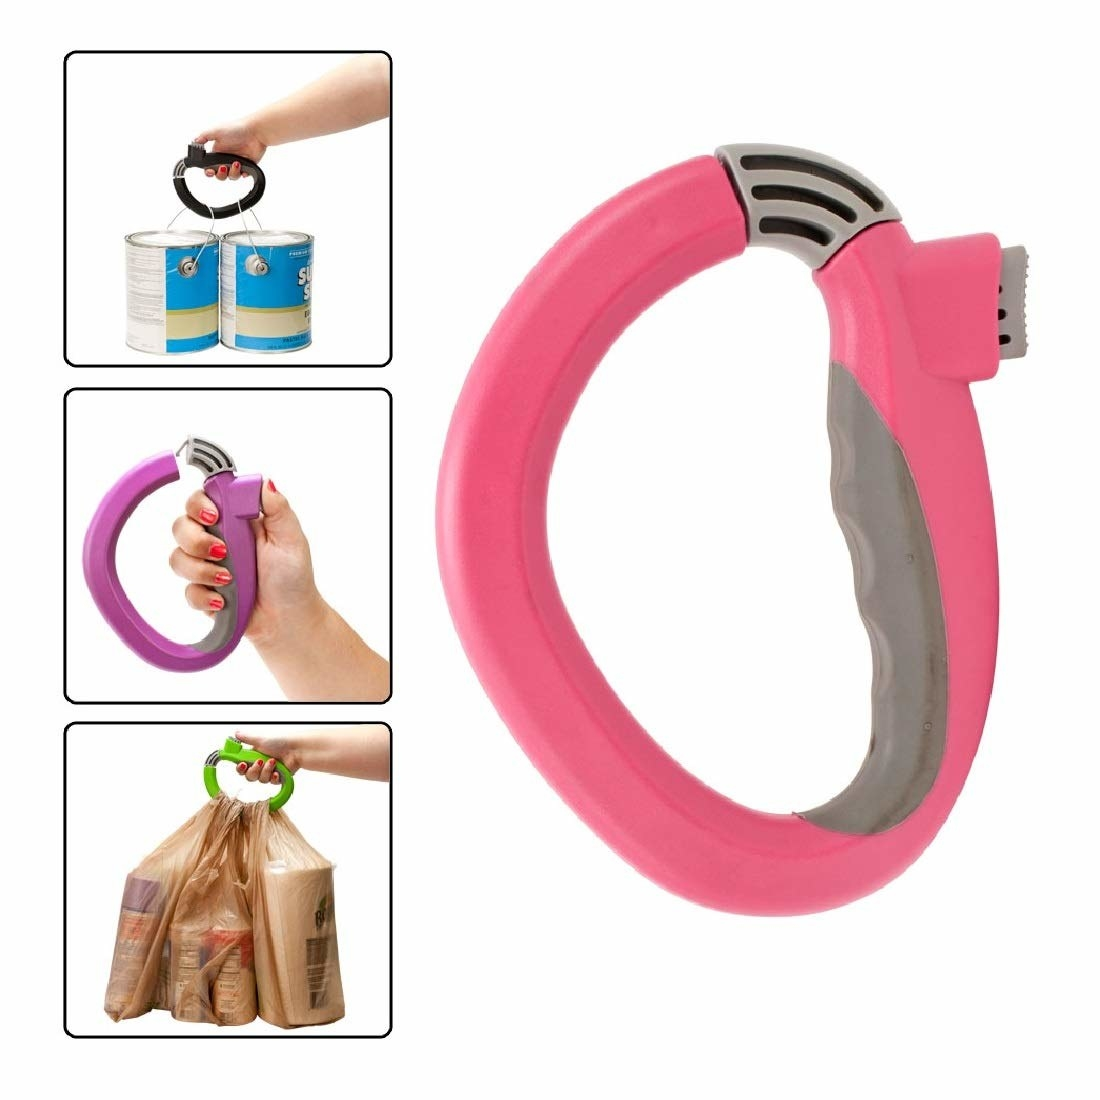 A collage of the bag holder being used to lift multiple things at once such as three bags of groceries and two cans of paint